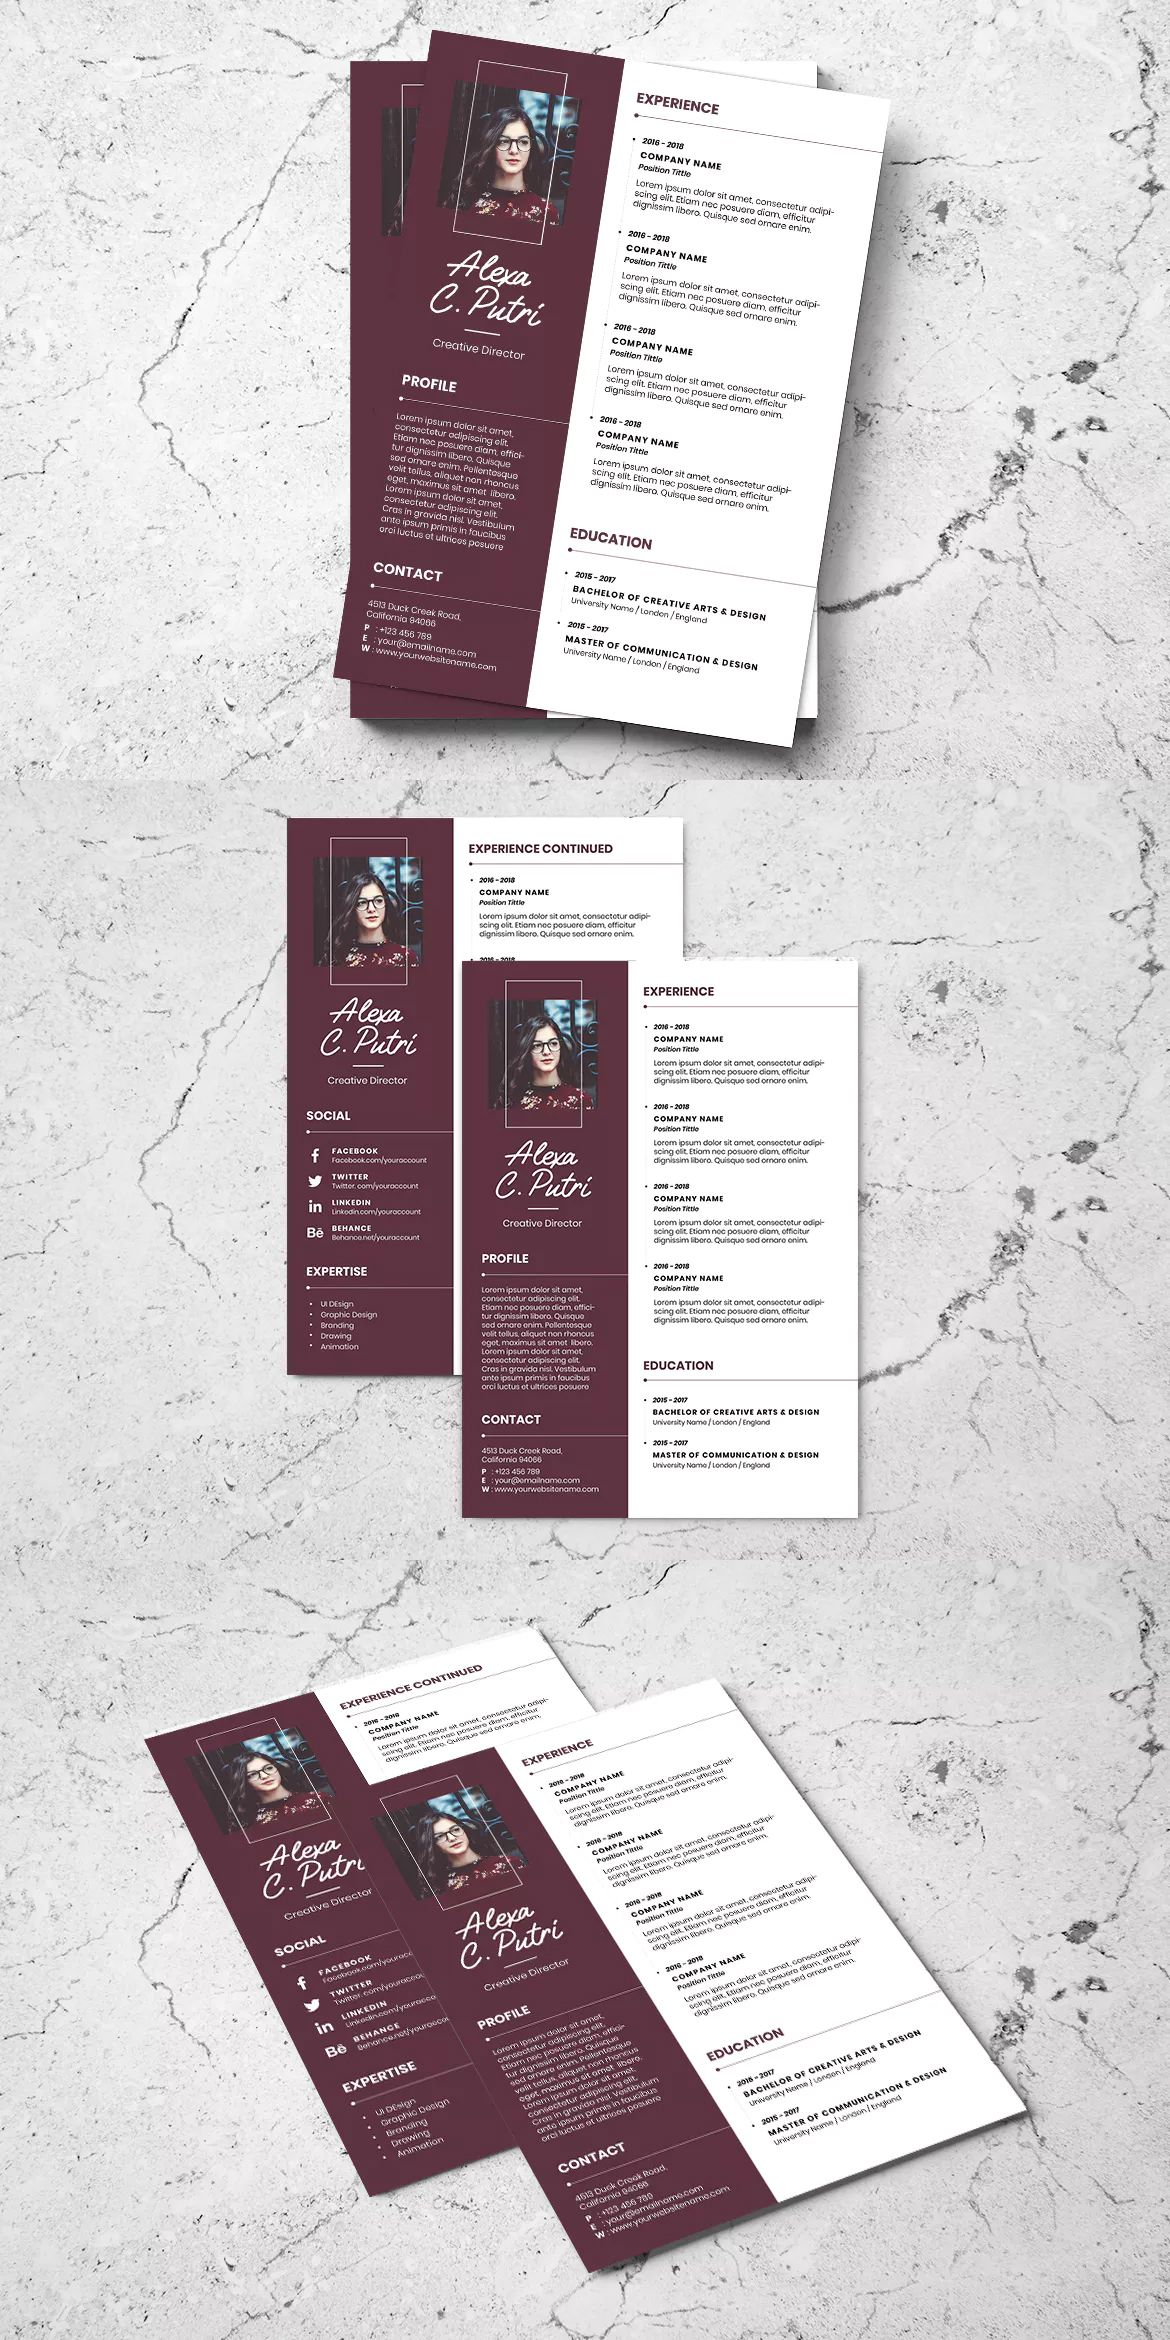 Clean Minimalist CV Resume AI and PSD Flyer Vol.1 by